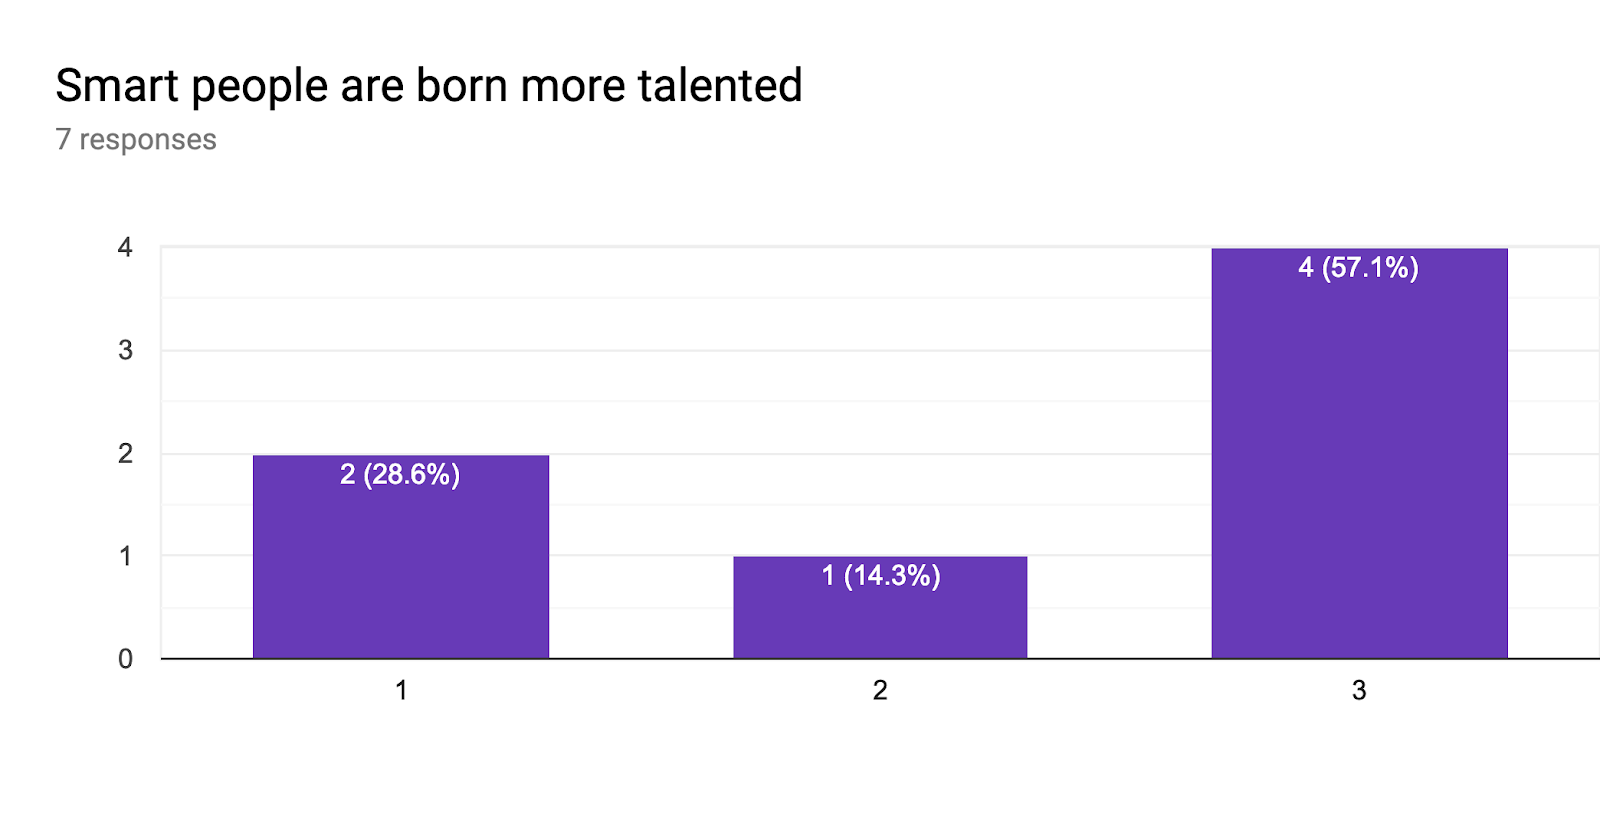 Forms response chart. Question title: Smart people are born more talented. Number of responses: 7 responses.